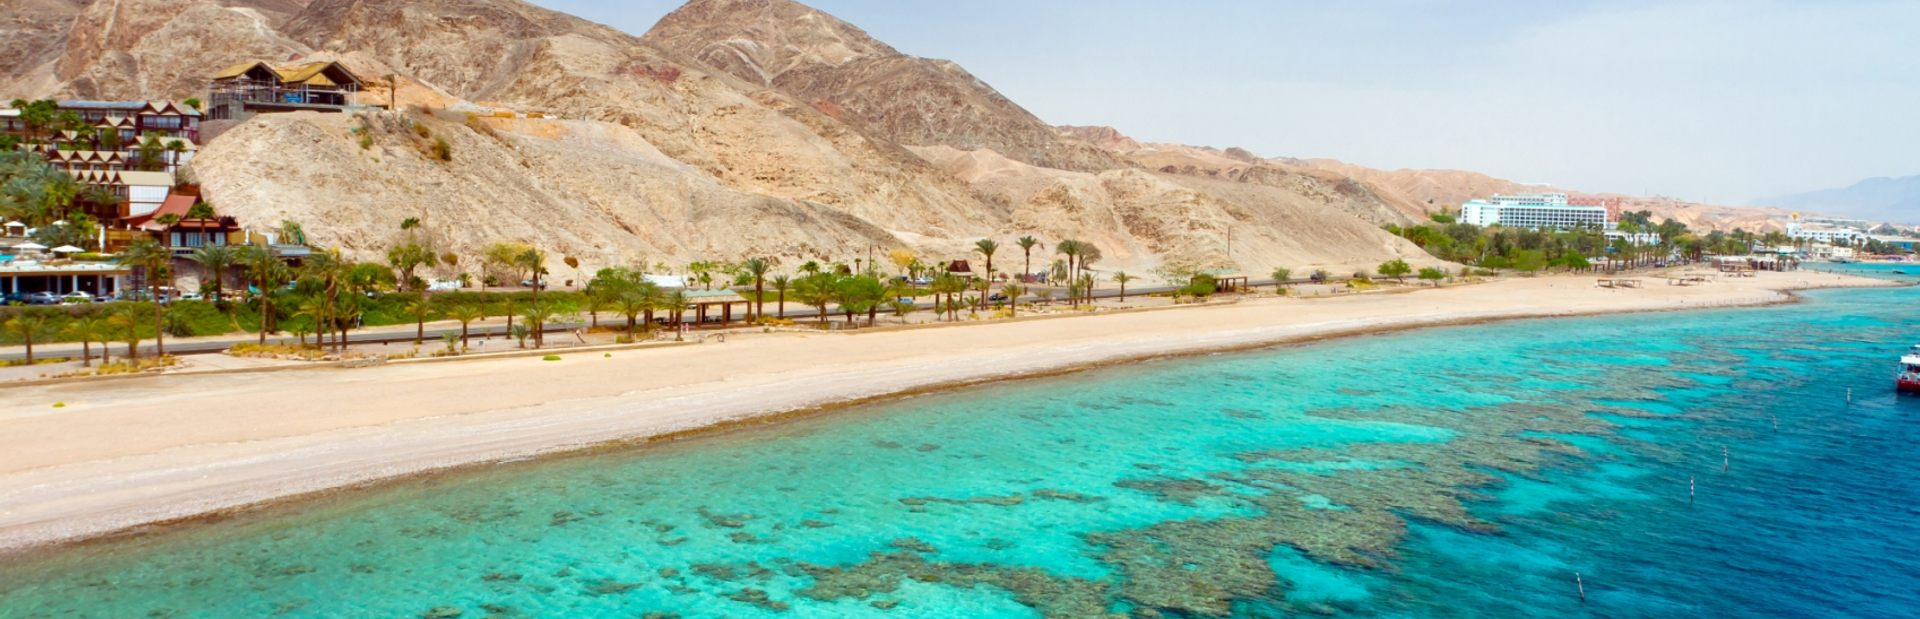 Egypt & Red Sea guide